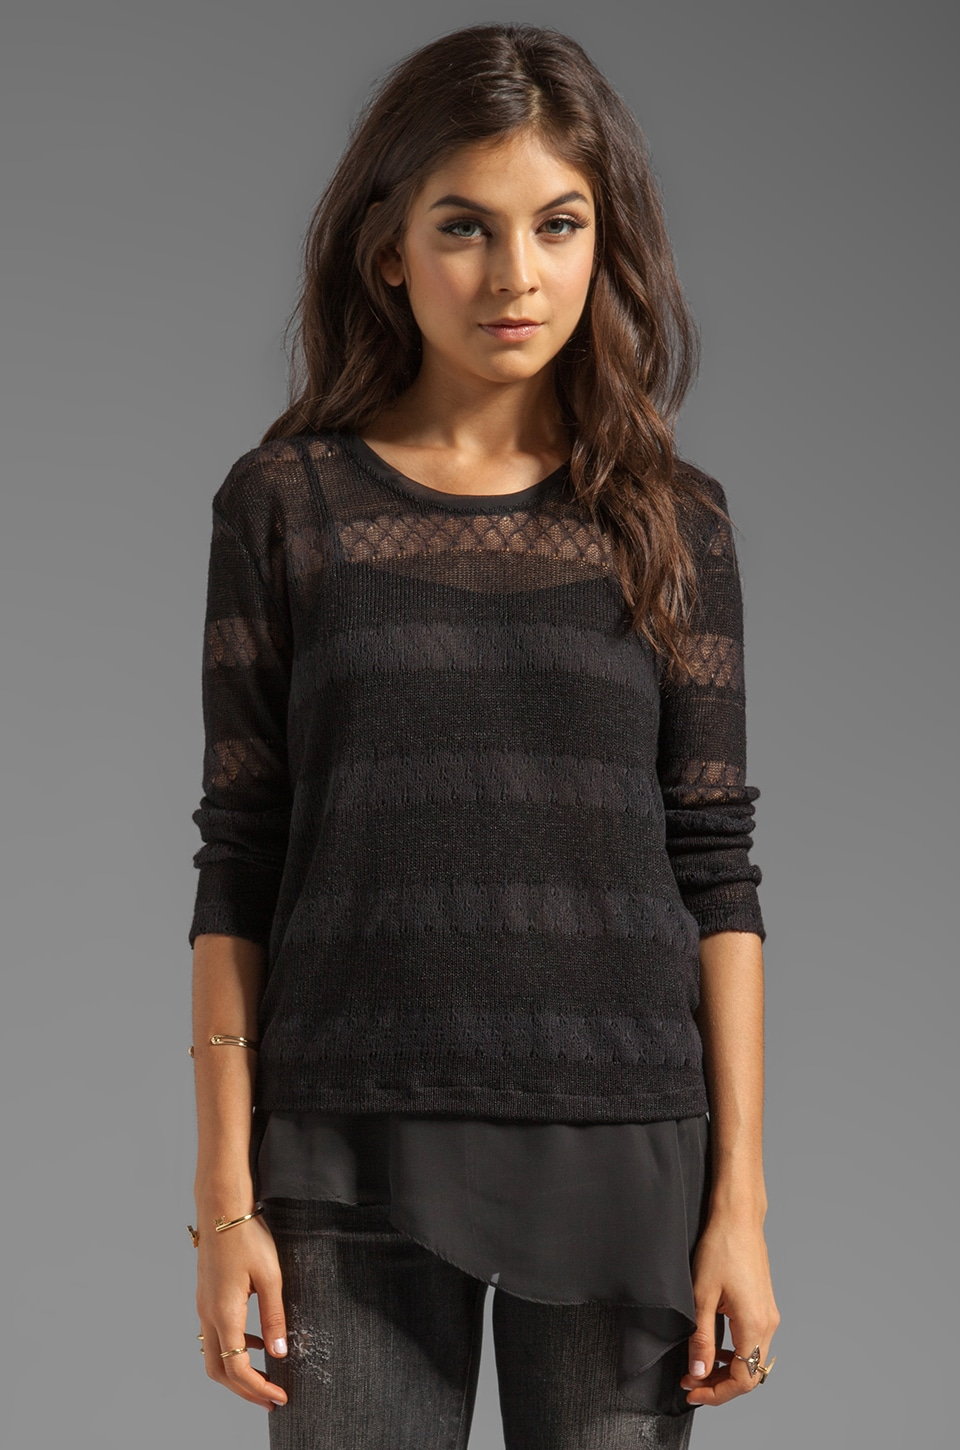 SJOBECK Pacific Pullover in Black